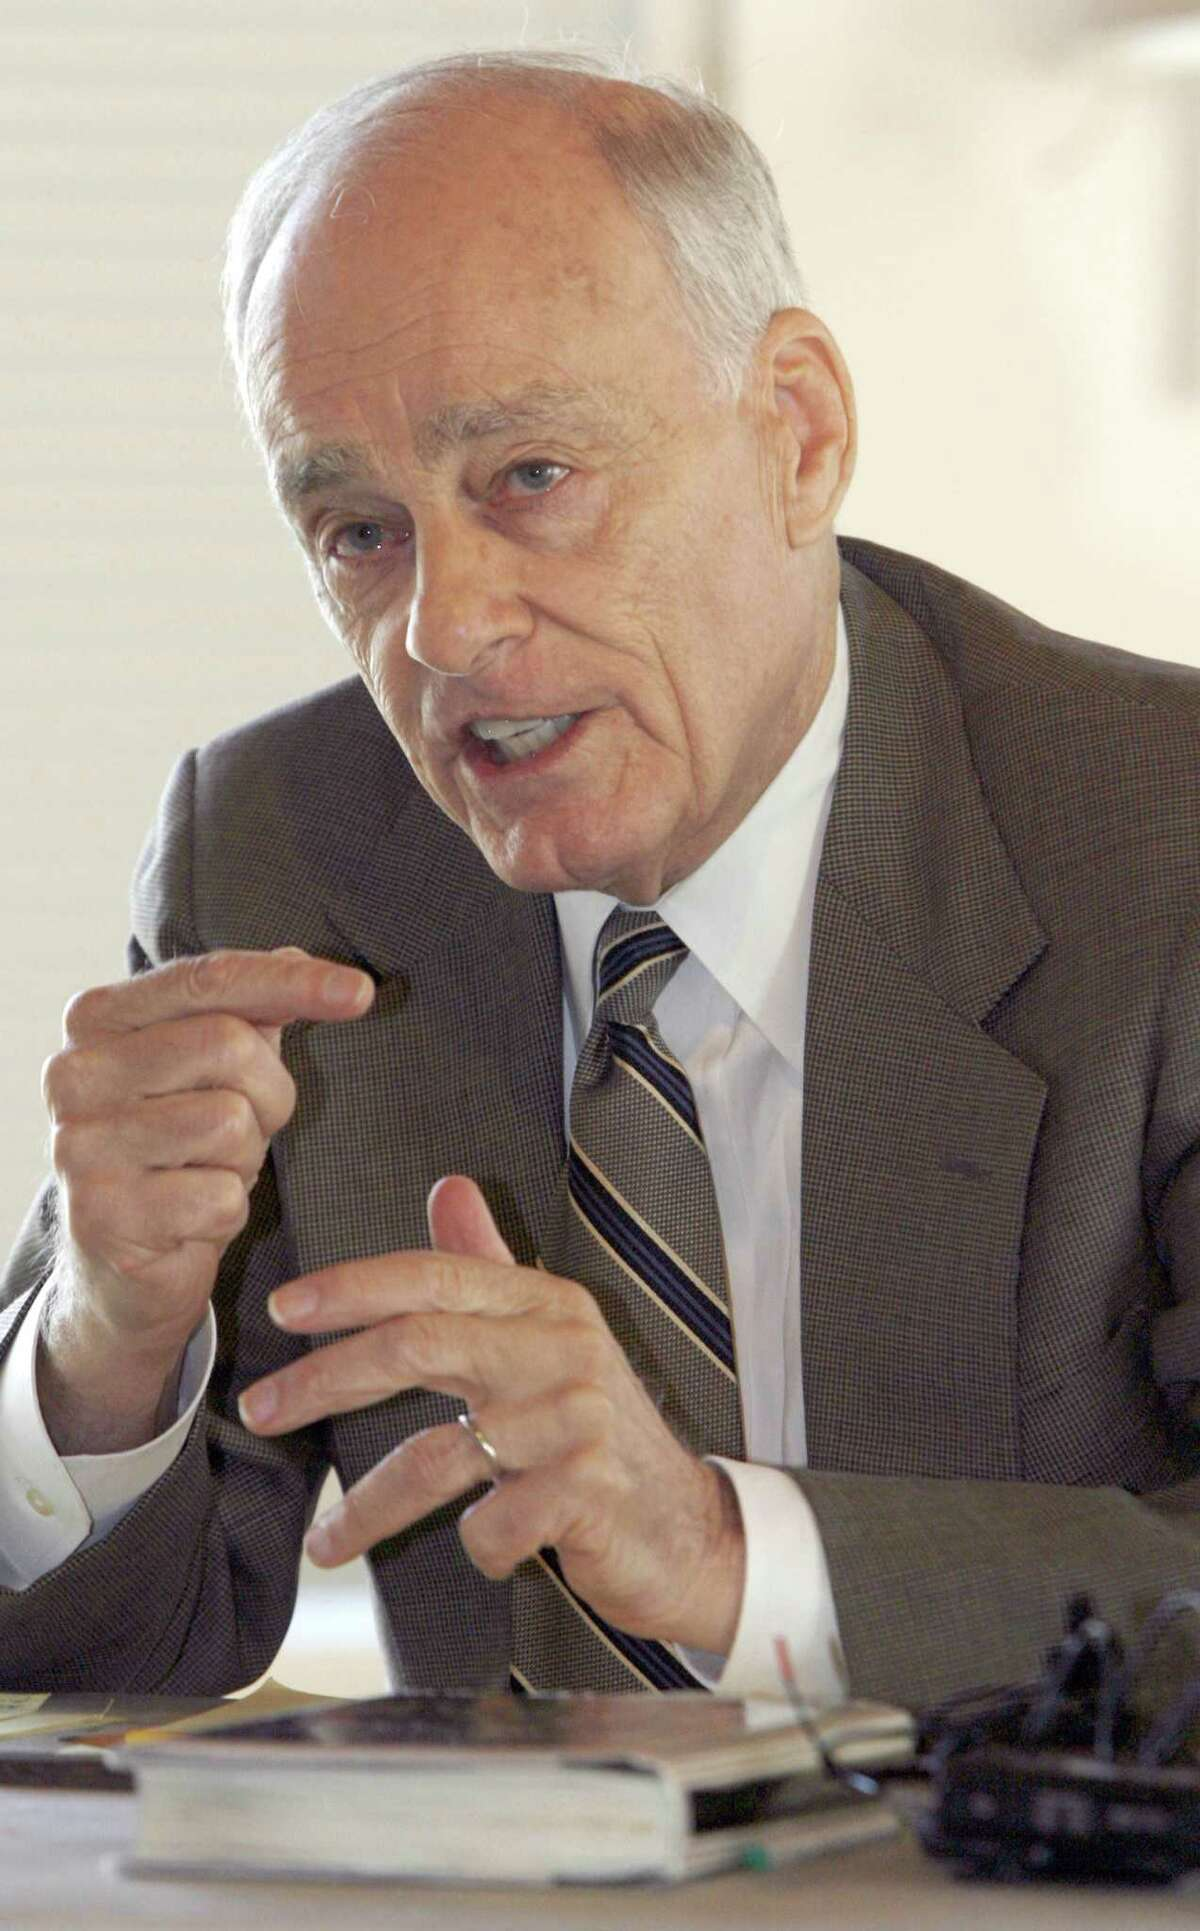 File-This Sept. 18, 2008, file photo shows Vincent Bugliosi speaking at a news conference in Burlington, Vt. The prosecutor in the Charles Manson trial who went on to write the best-selling true-crime book, ìHelter Skelter,î has died. Bugliosi was 80 years old. His son Vincent Bugliosi Jr. tells the Associated Press Monday, June 8, 2015, that Bugliosi died of cancer Saturday at a hospital in Los Angeles. (AP Photo/Toby Talbot, File)